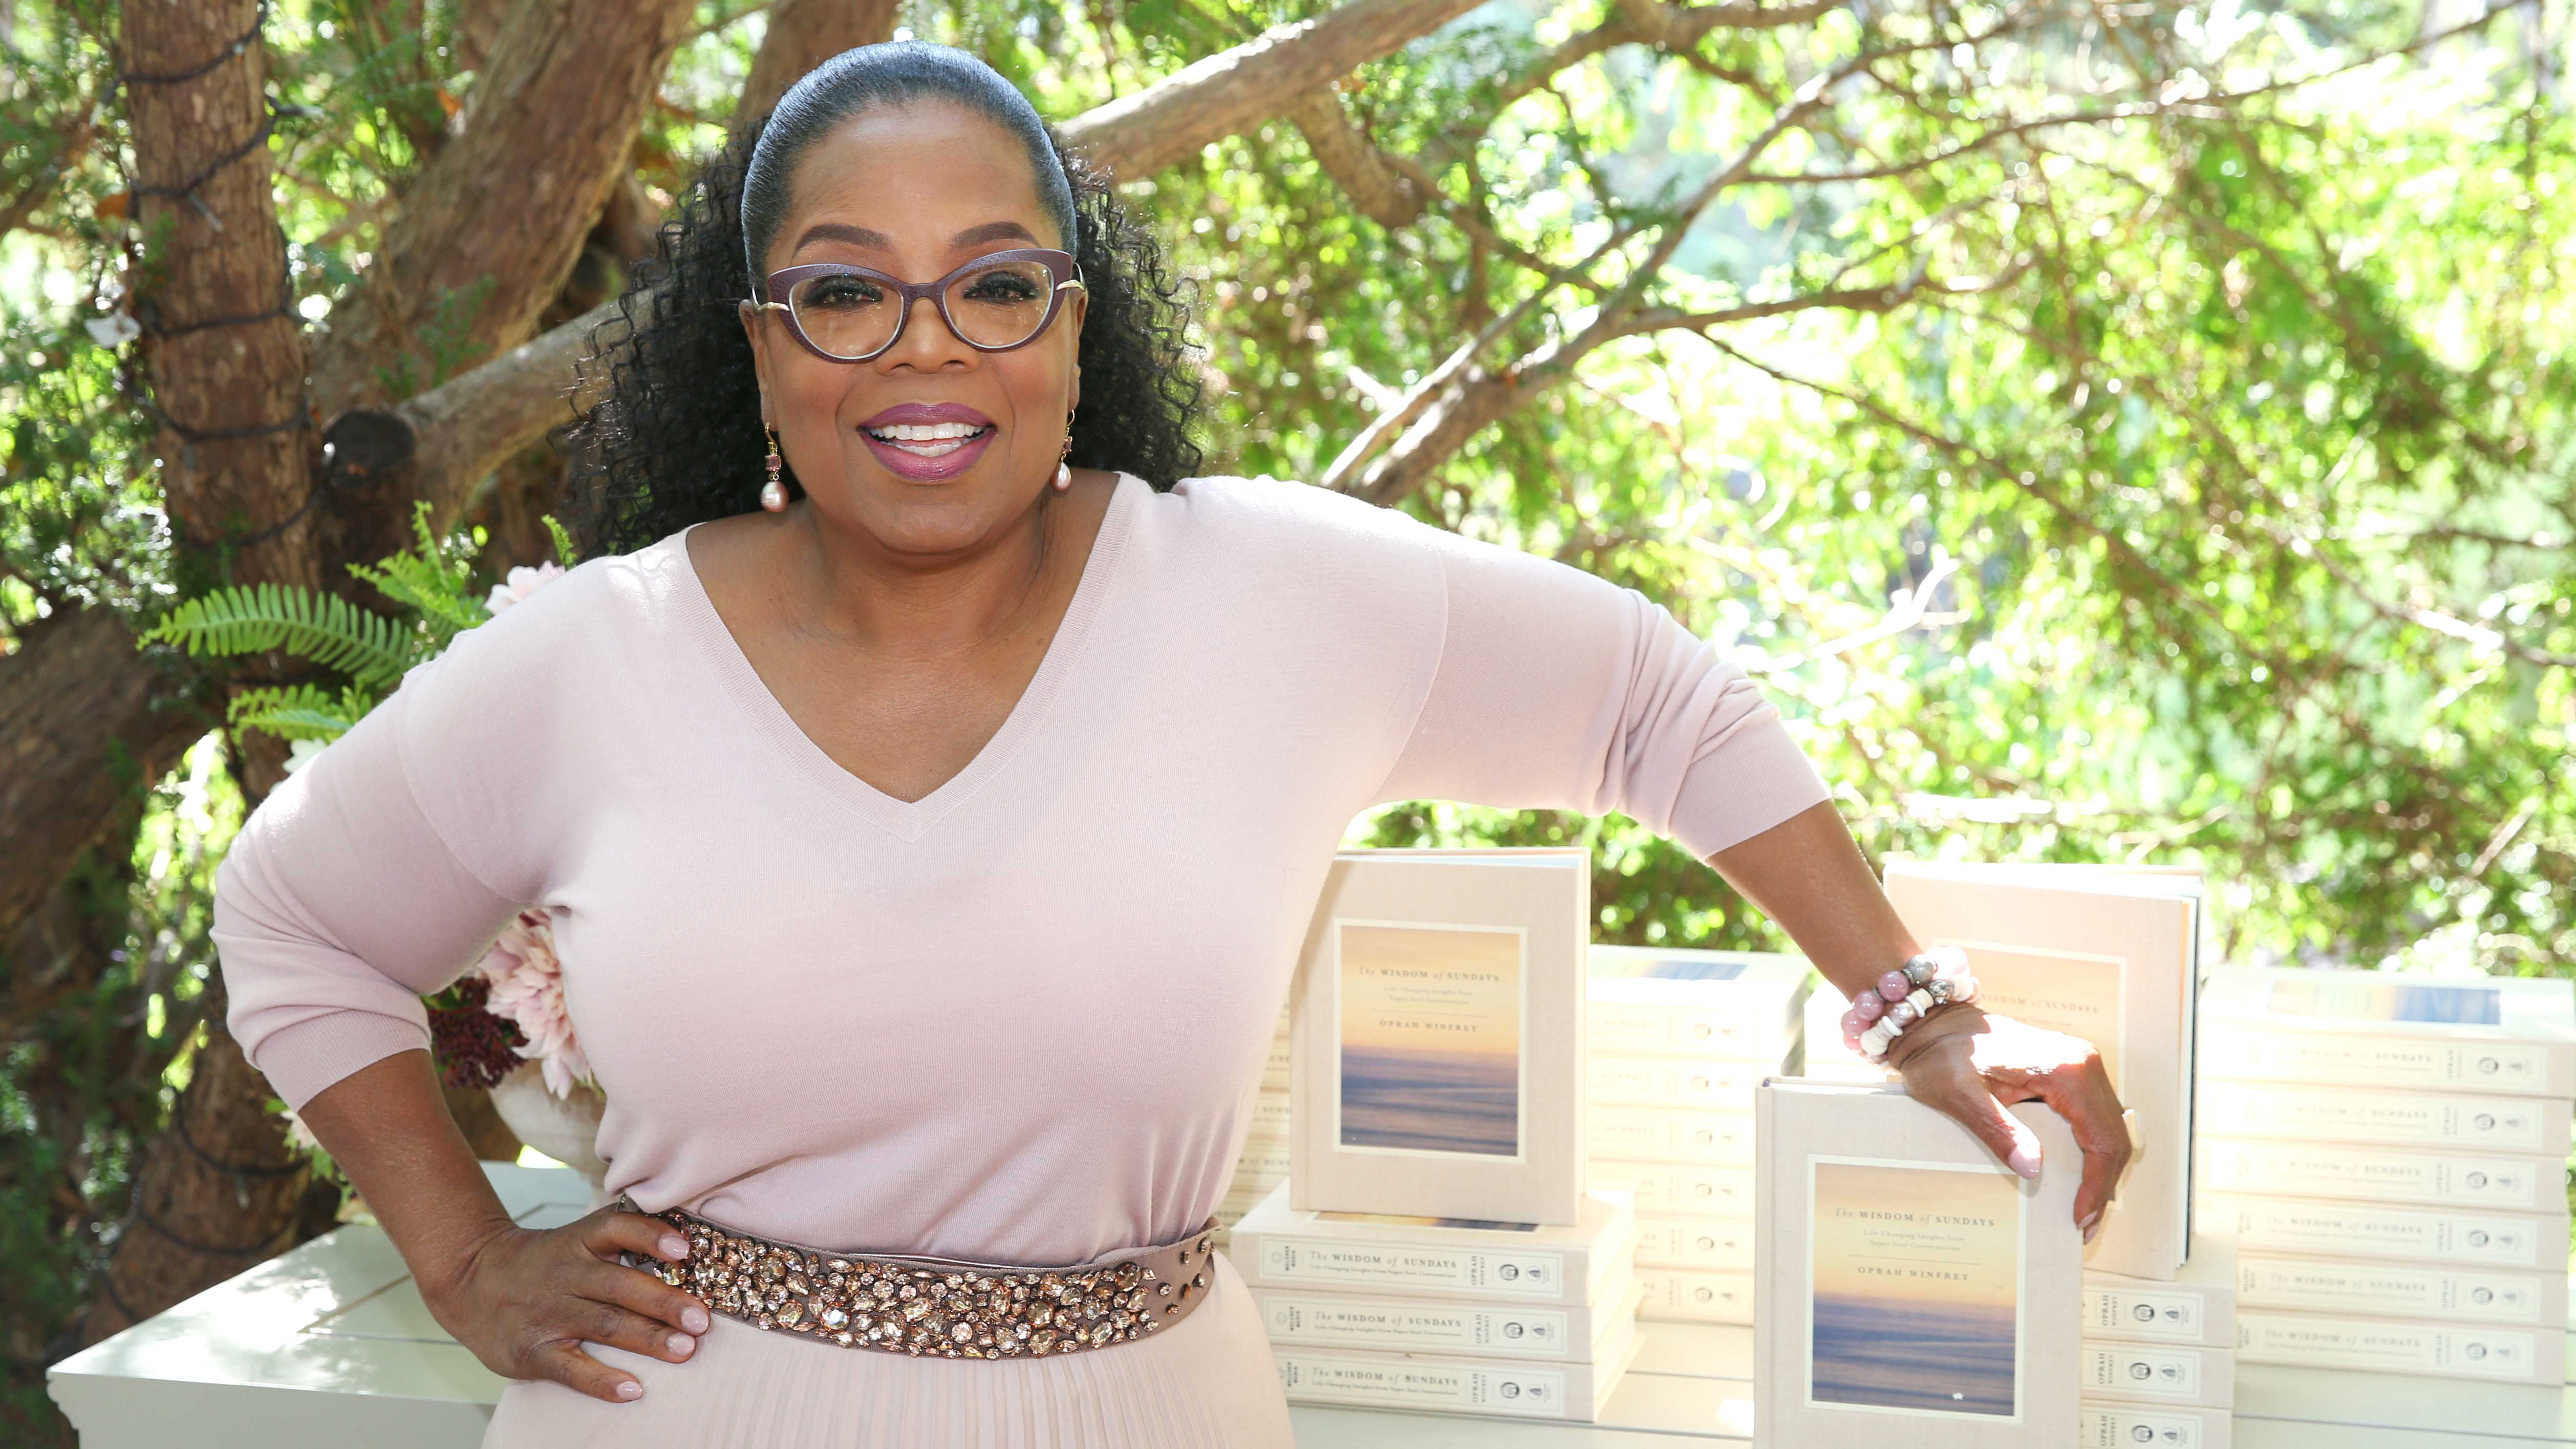 Oprah's New Book Shares 'The Wisdom of Sundays'